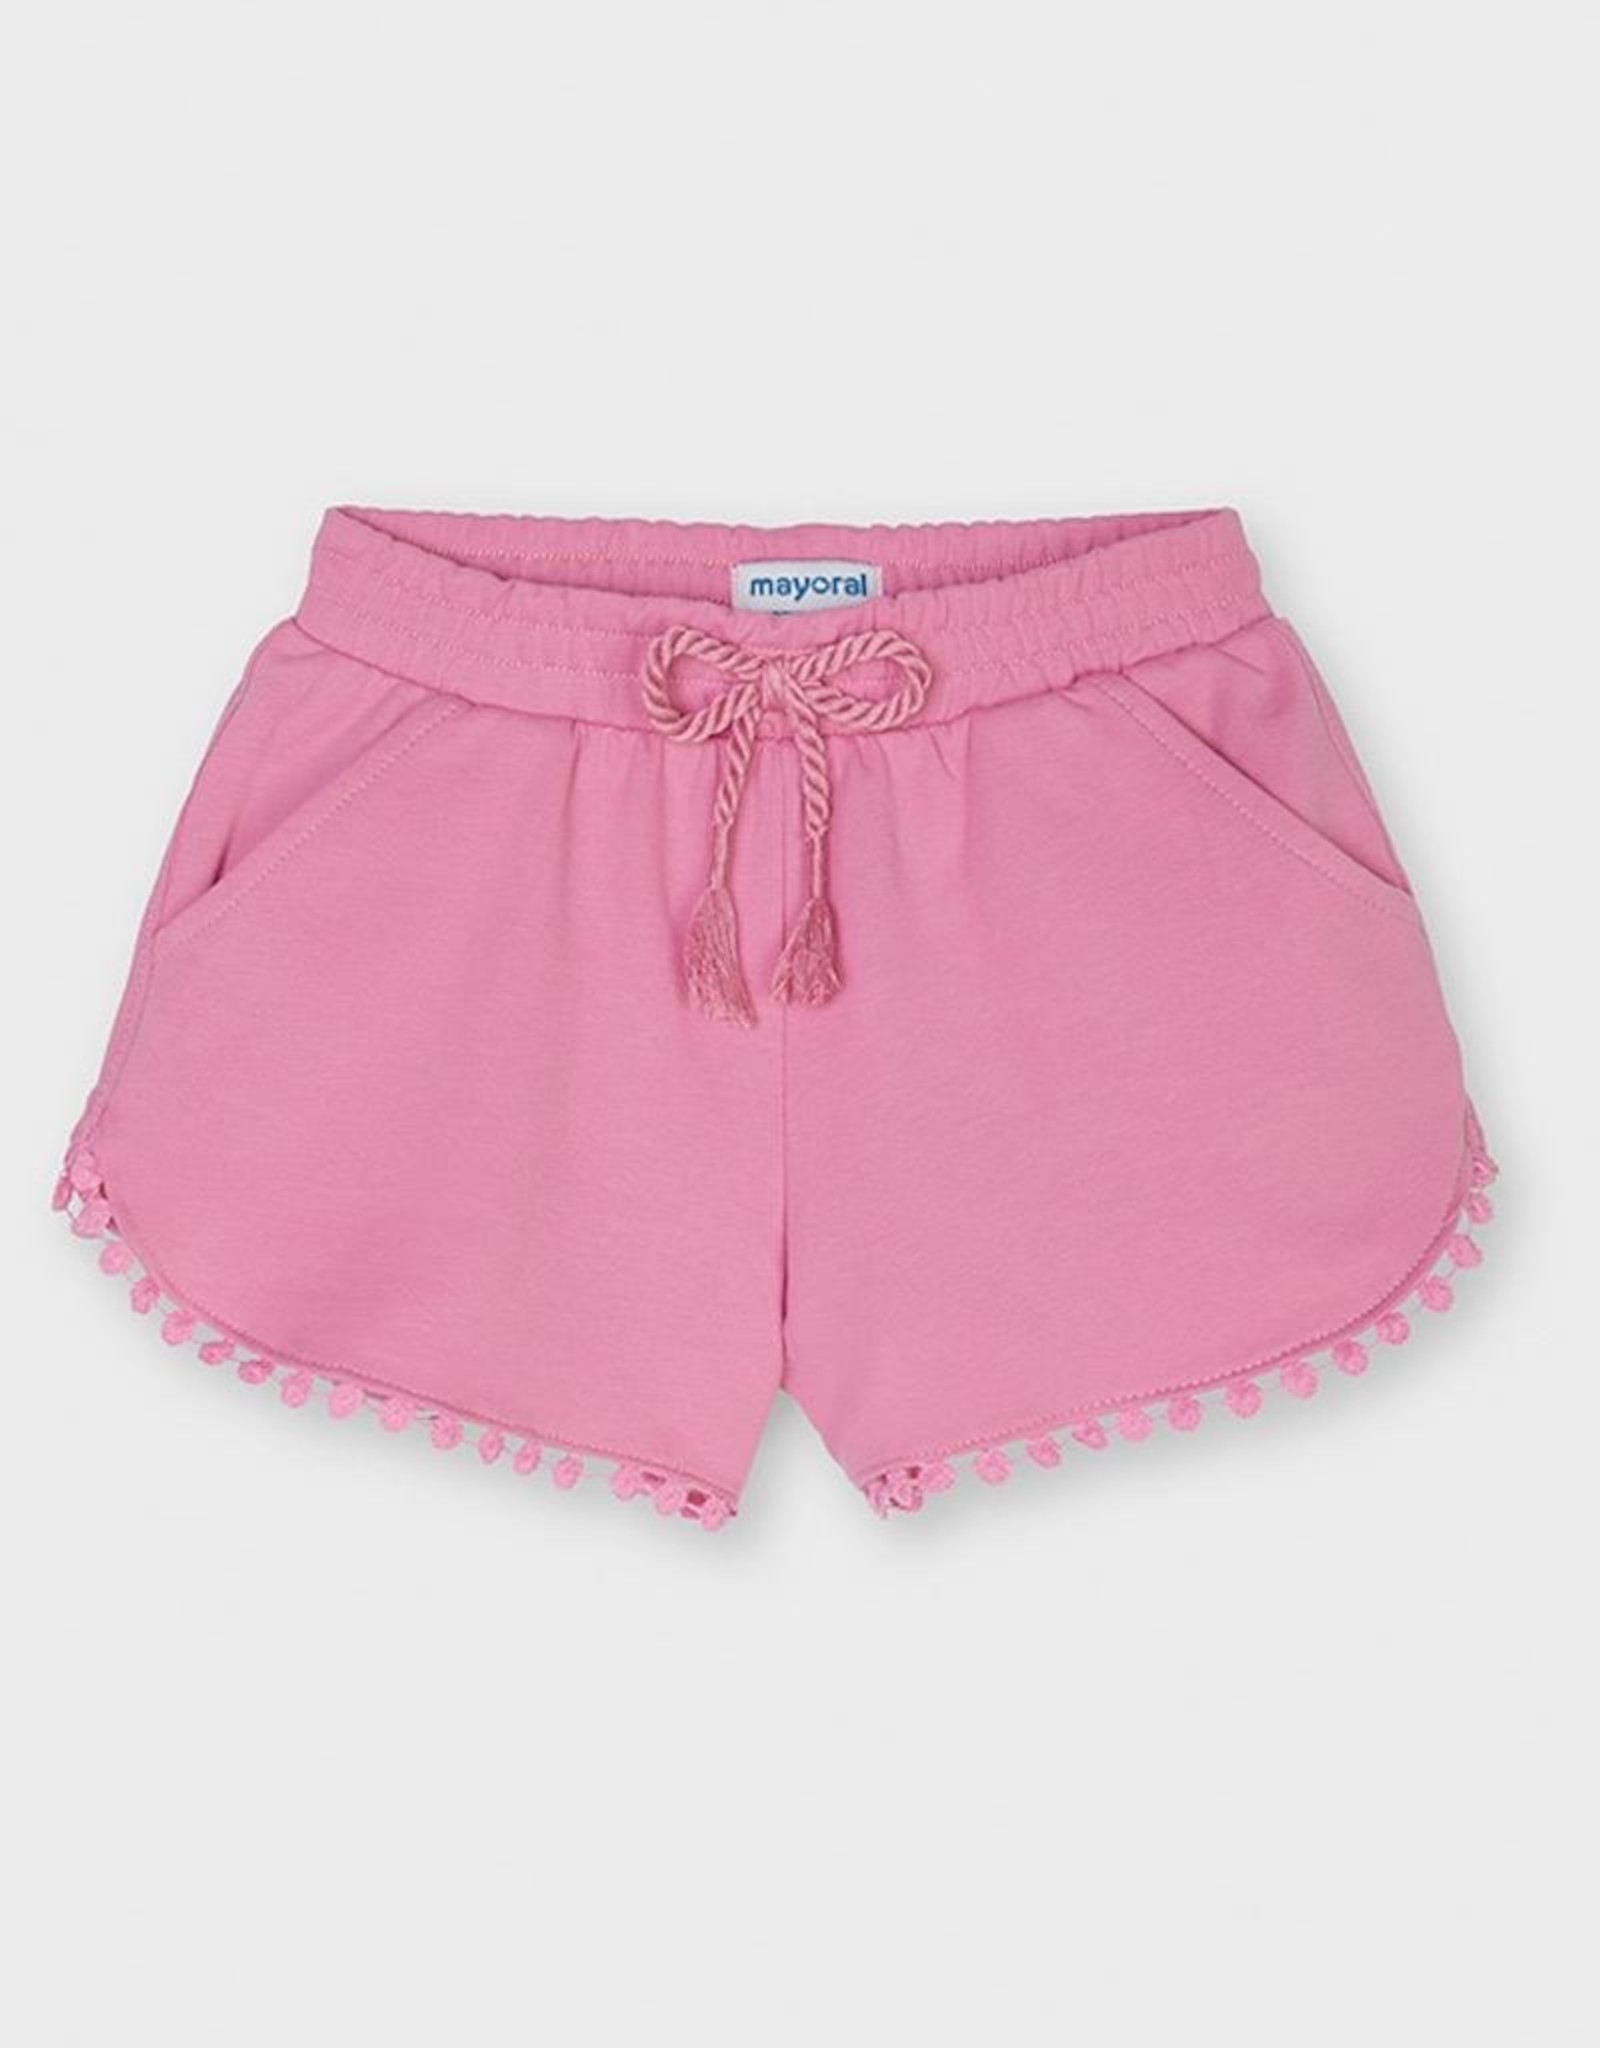 Mayoral Camellia Chenille Knit Shorts